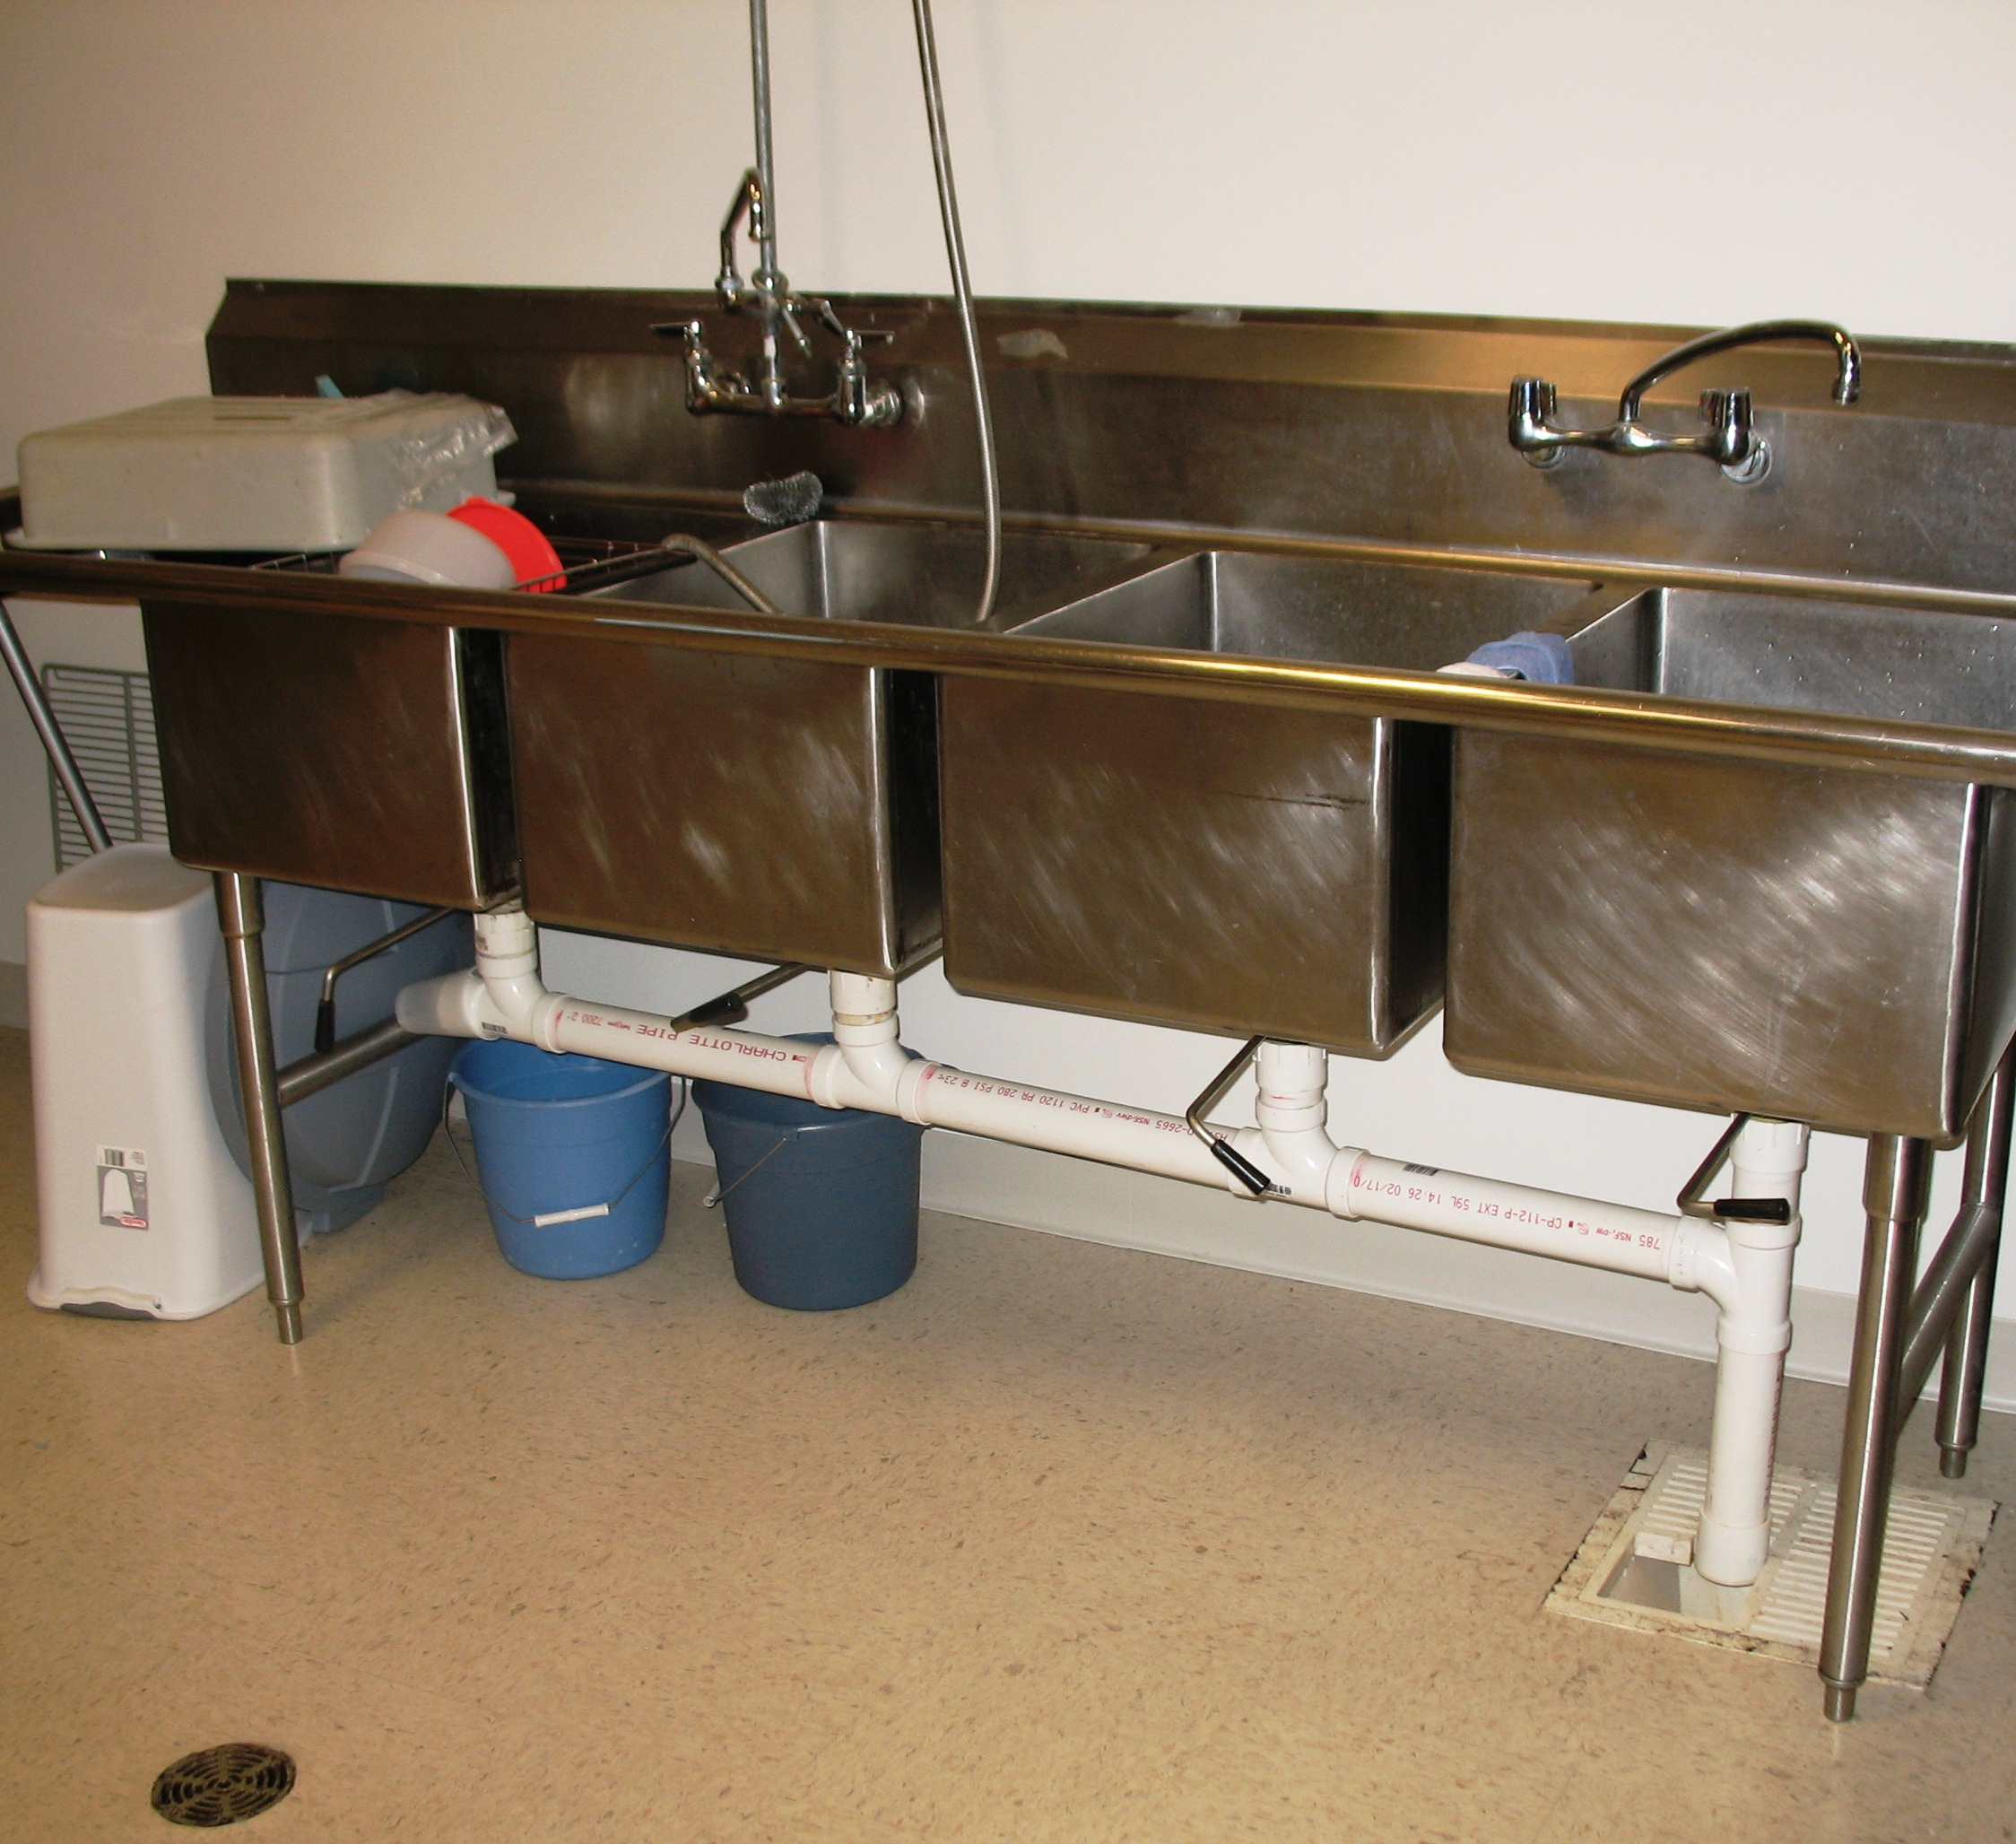 3 compartment sink plumbing diagram double light switch wiring uk commercial plumbers and contractors in columbus ga ace